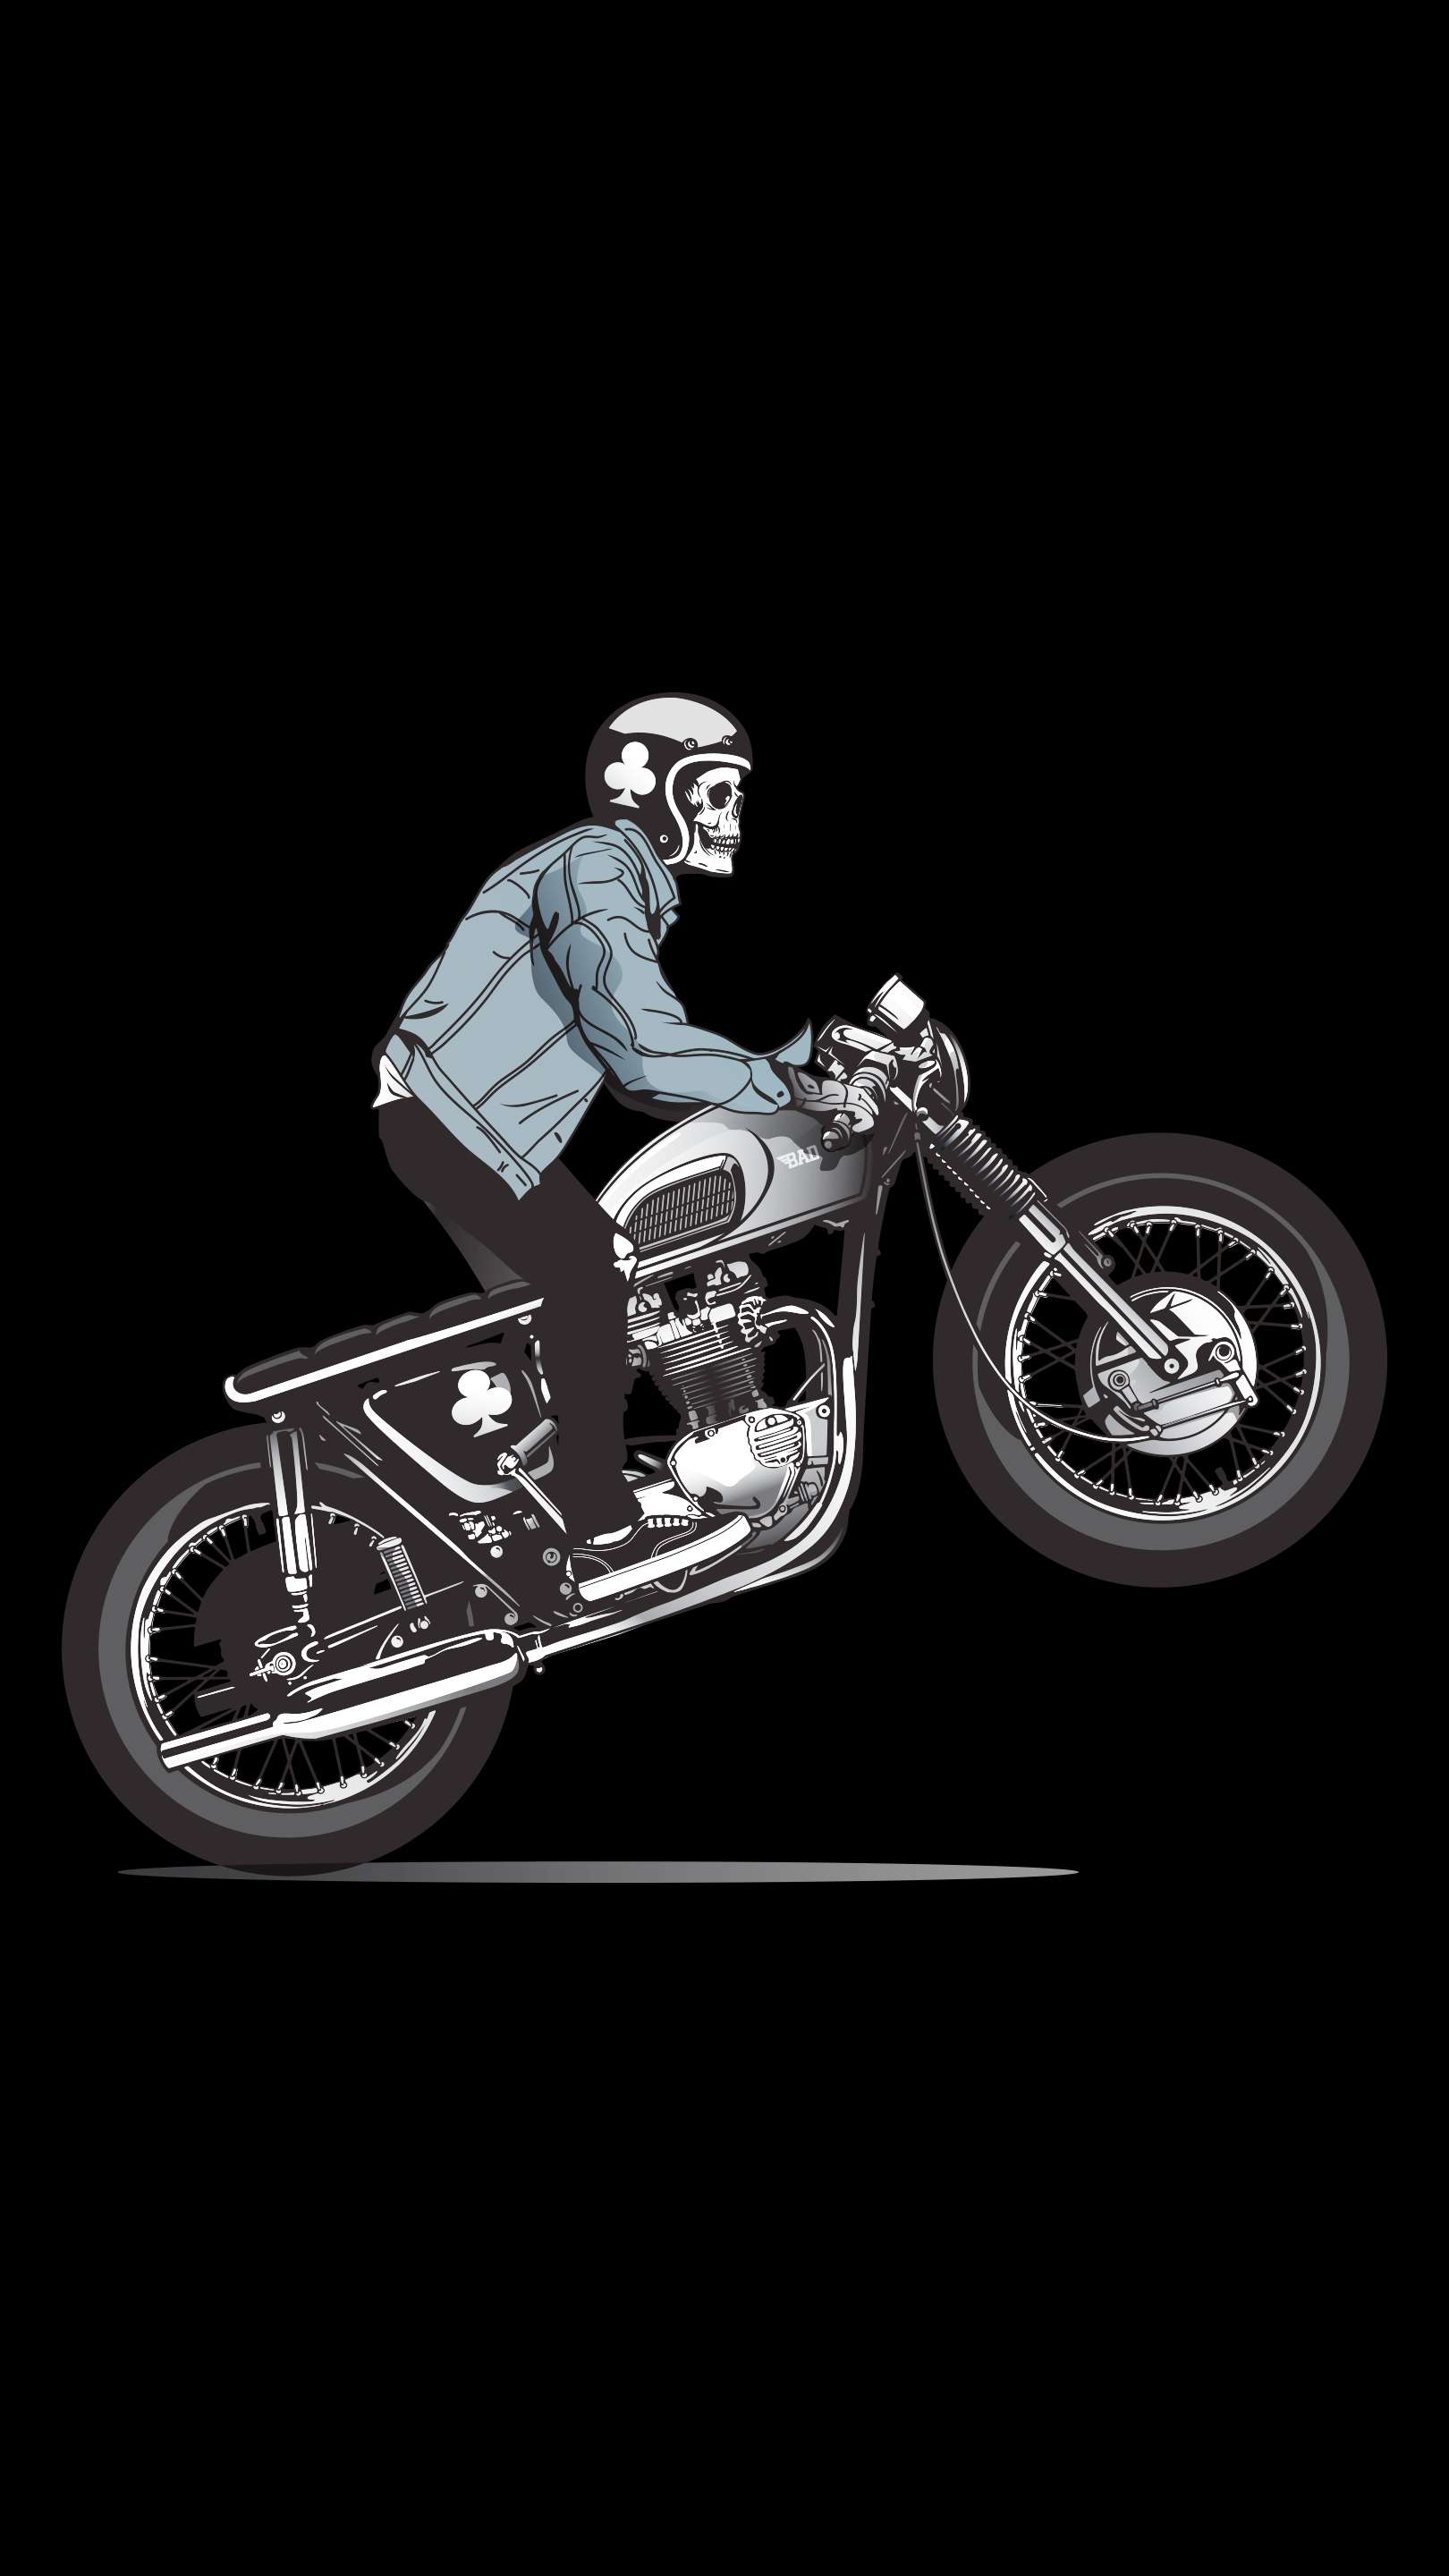 Skull Rider iPhone Wallpaper